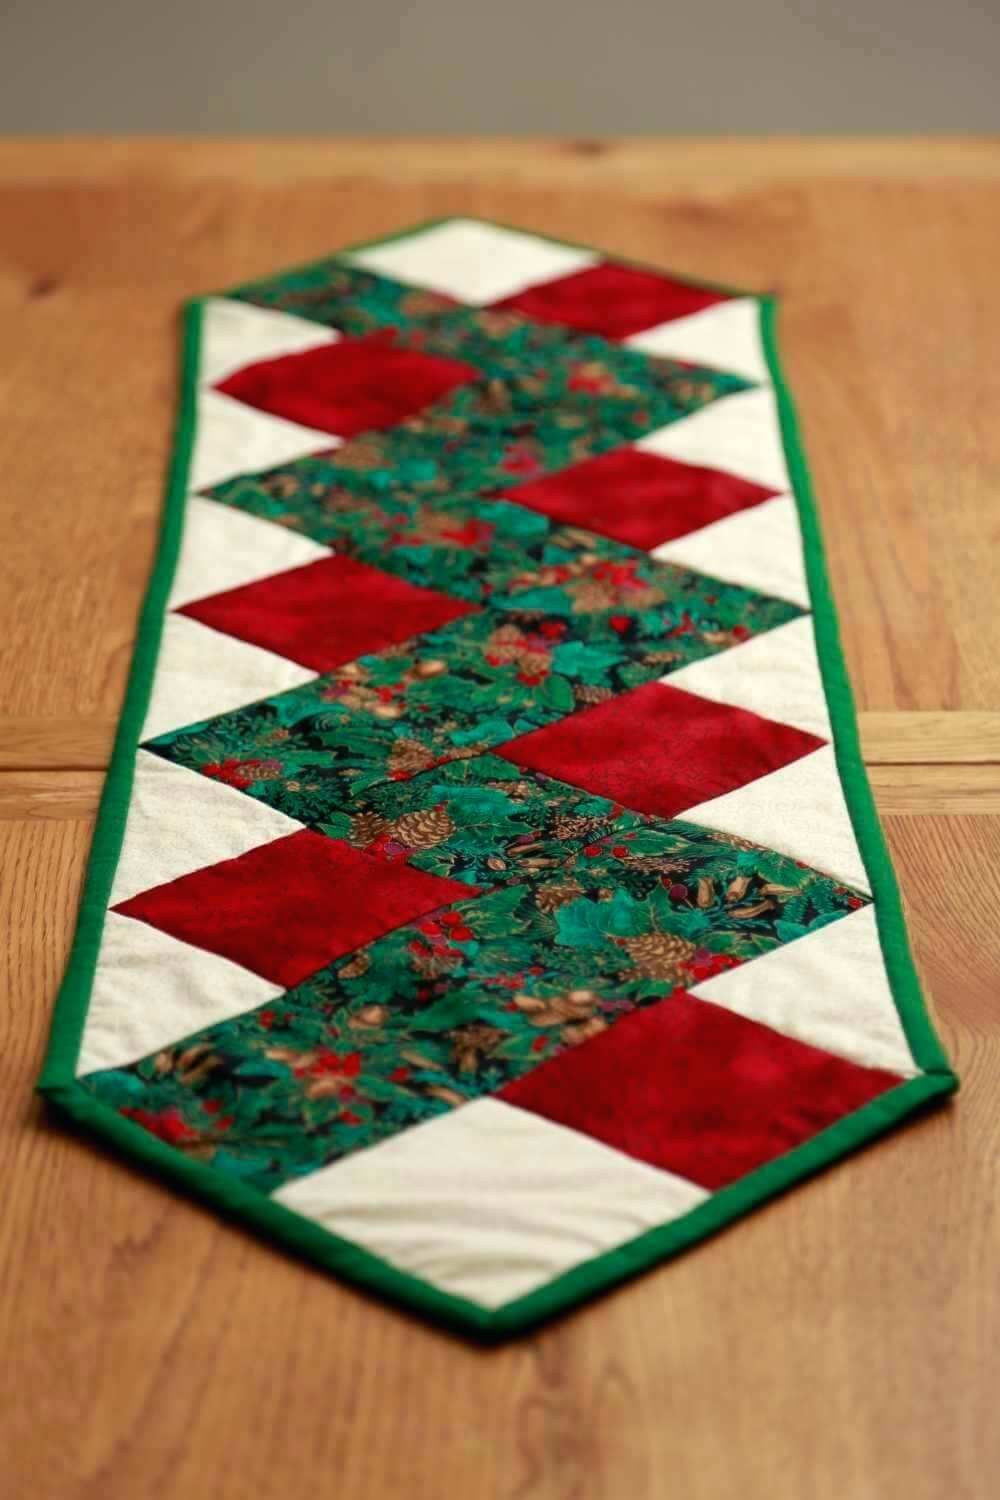 Christmas Table Runner Uk.Christmas Table Runner Free Printable Quilt Patterns Uk Kits